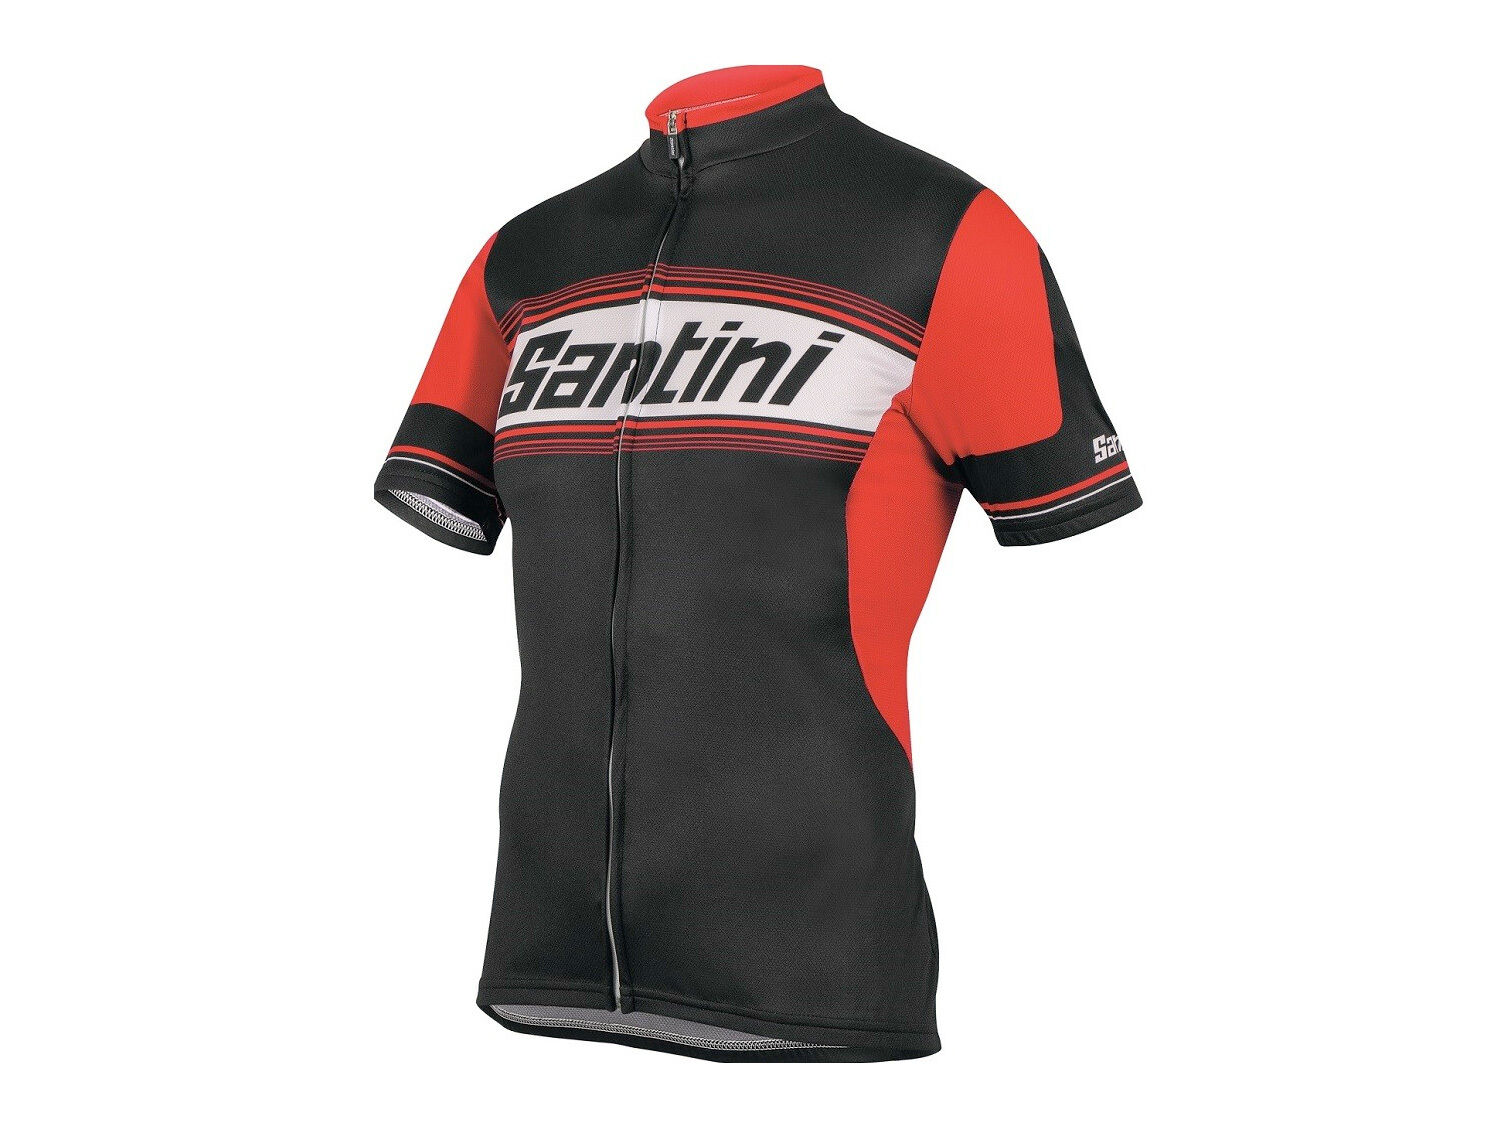 TAU Lightweight Cycling Jersey in Red. Made in  by Santini